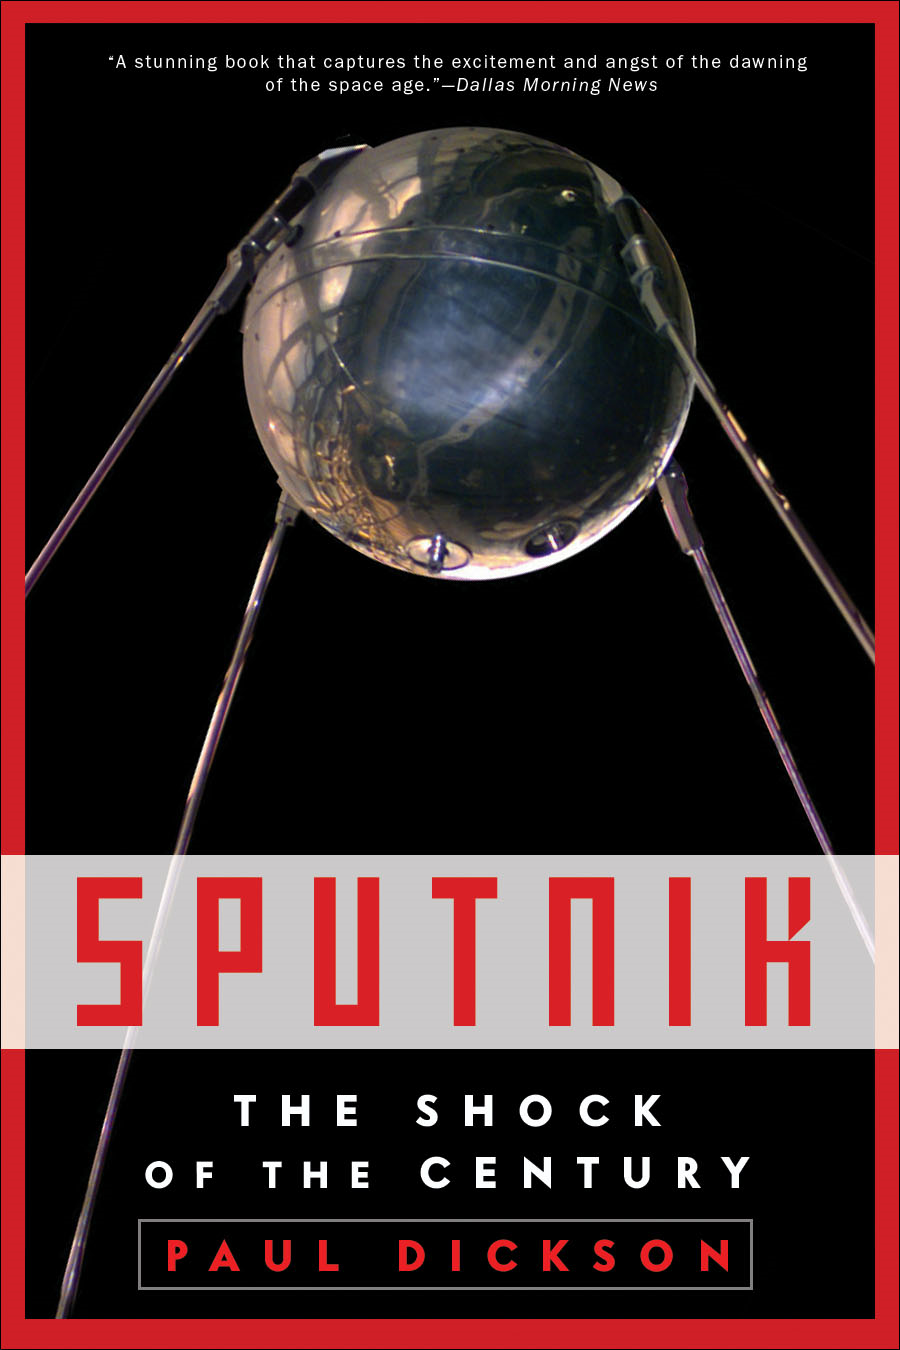 Sputnik: The Shock of the Century The Shock of the Century